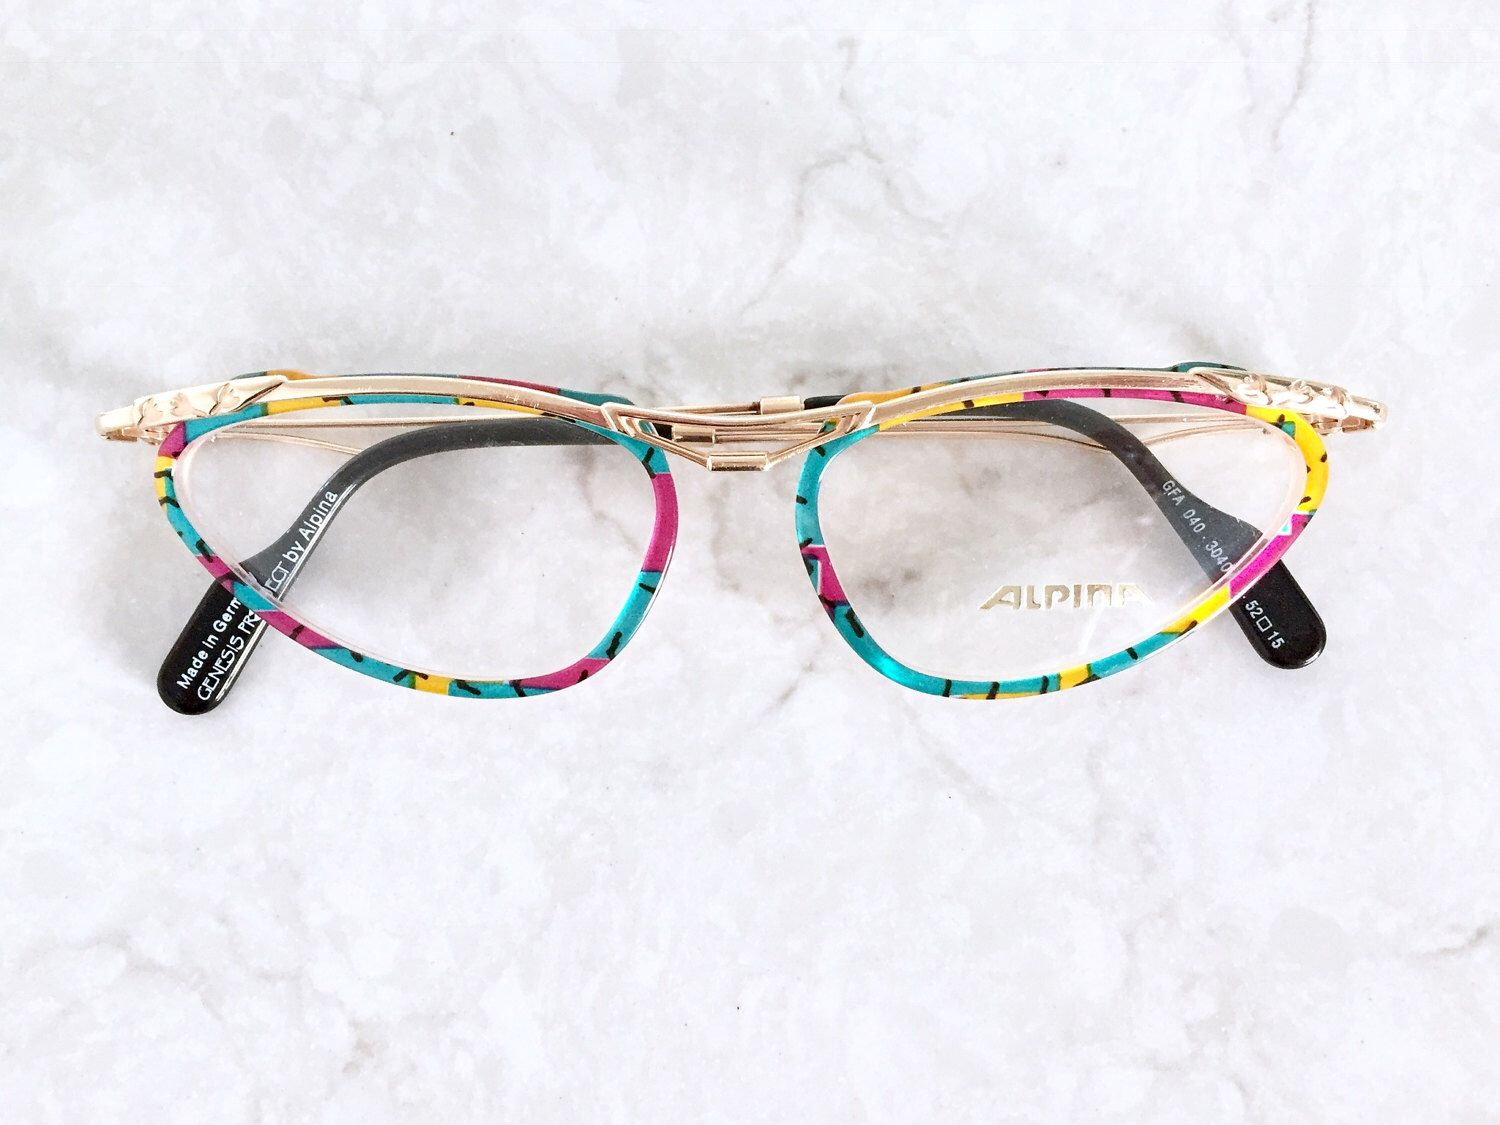 Alpina Eyeglasses / German High Quality Eyeglass Frames Never Used ...